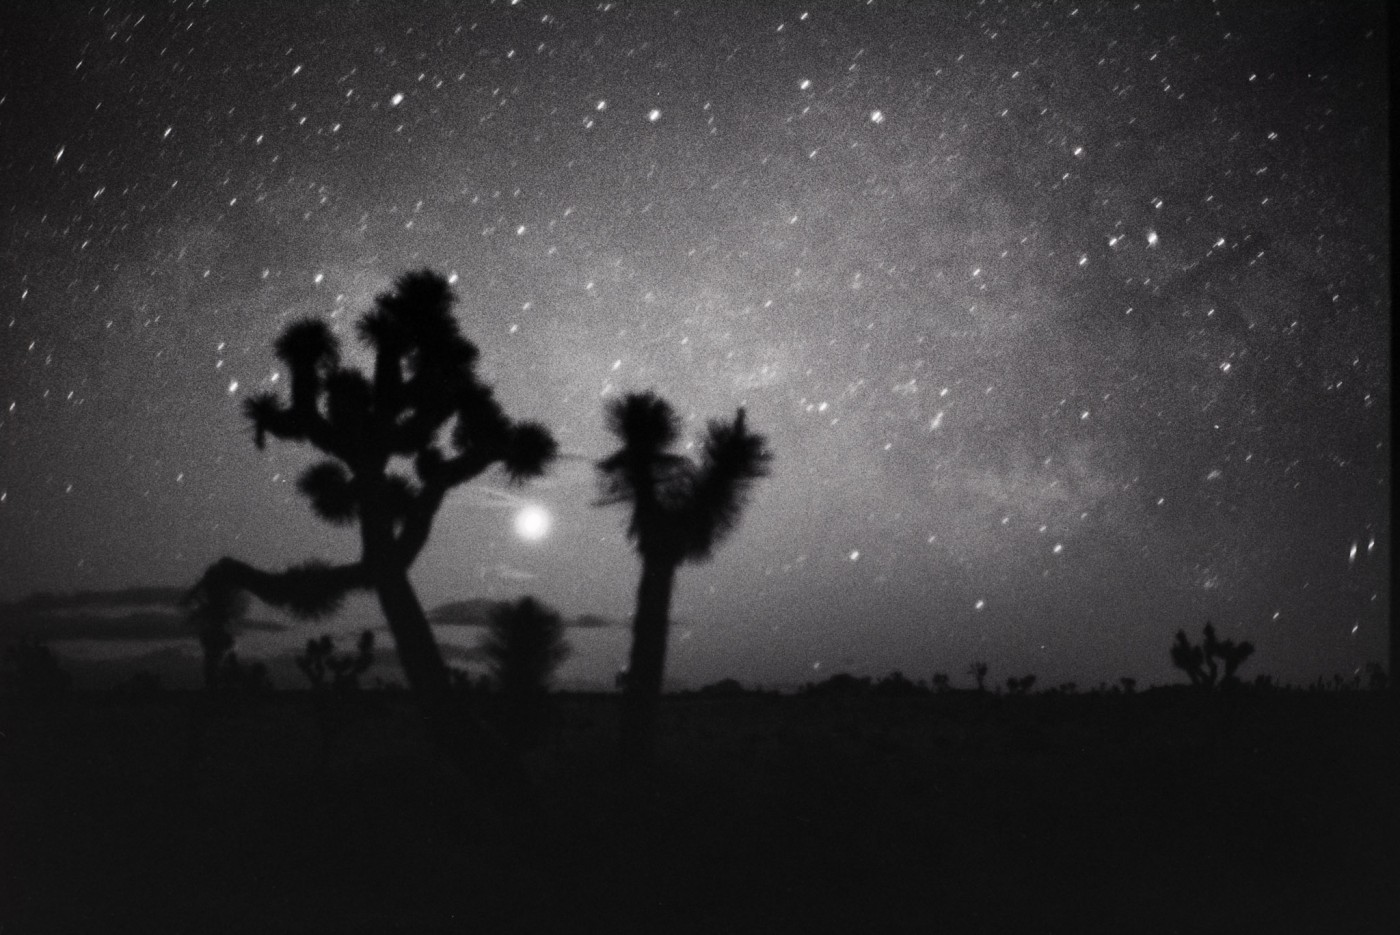 Photographing the milky way on film joshua tree